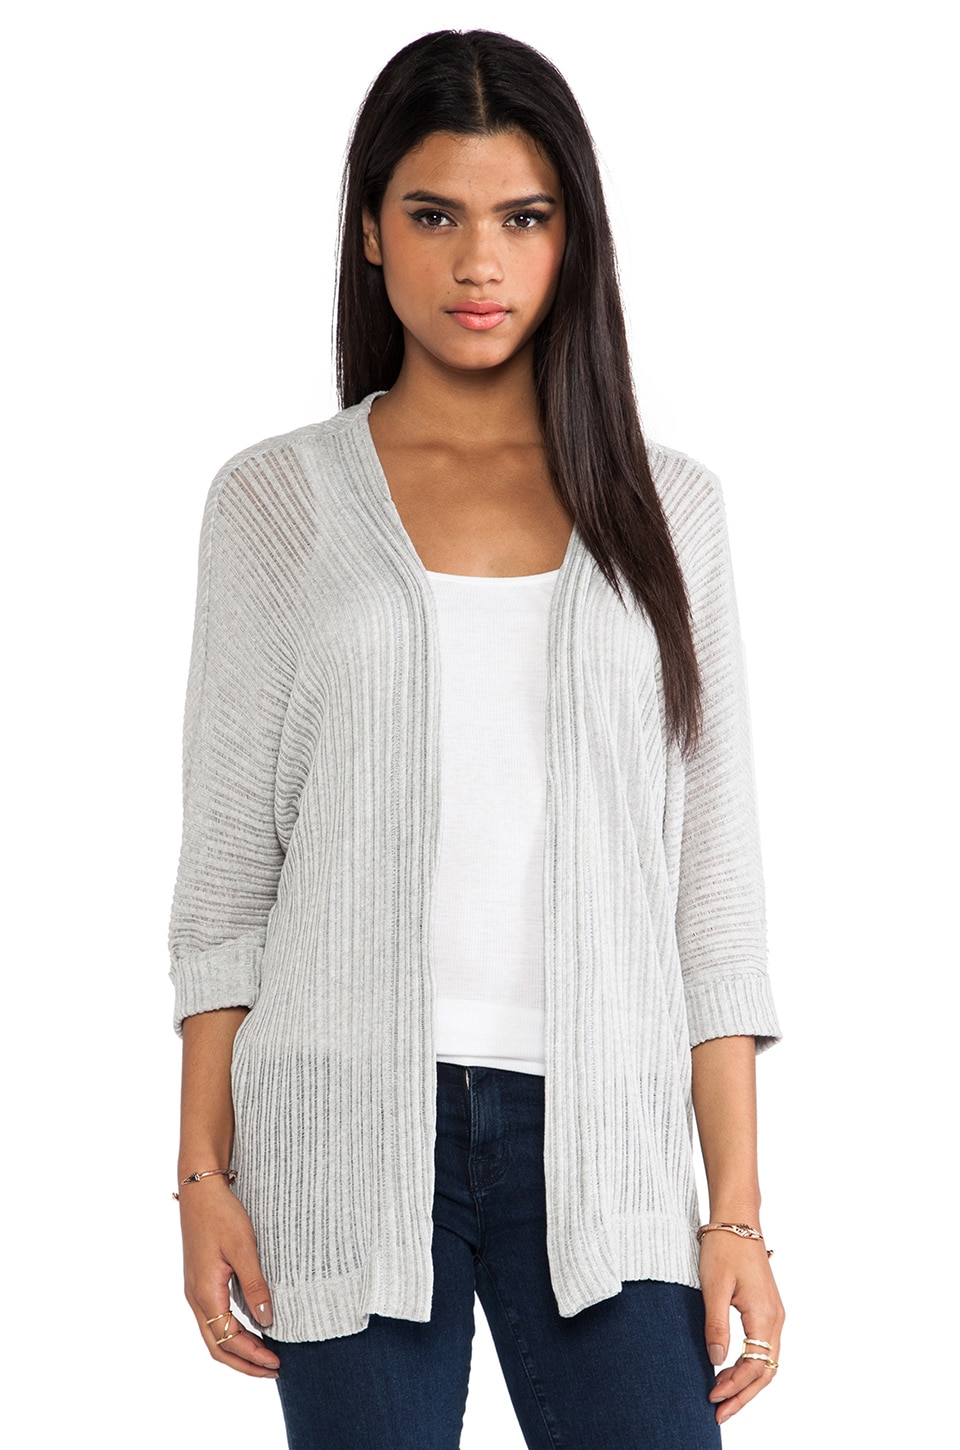 dolan Open Knit Cardigan in Caspian Grey